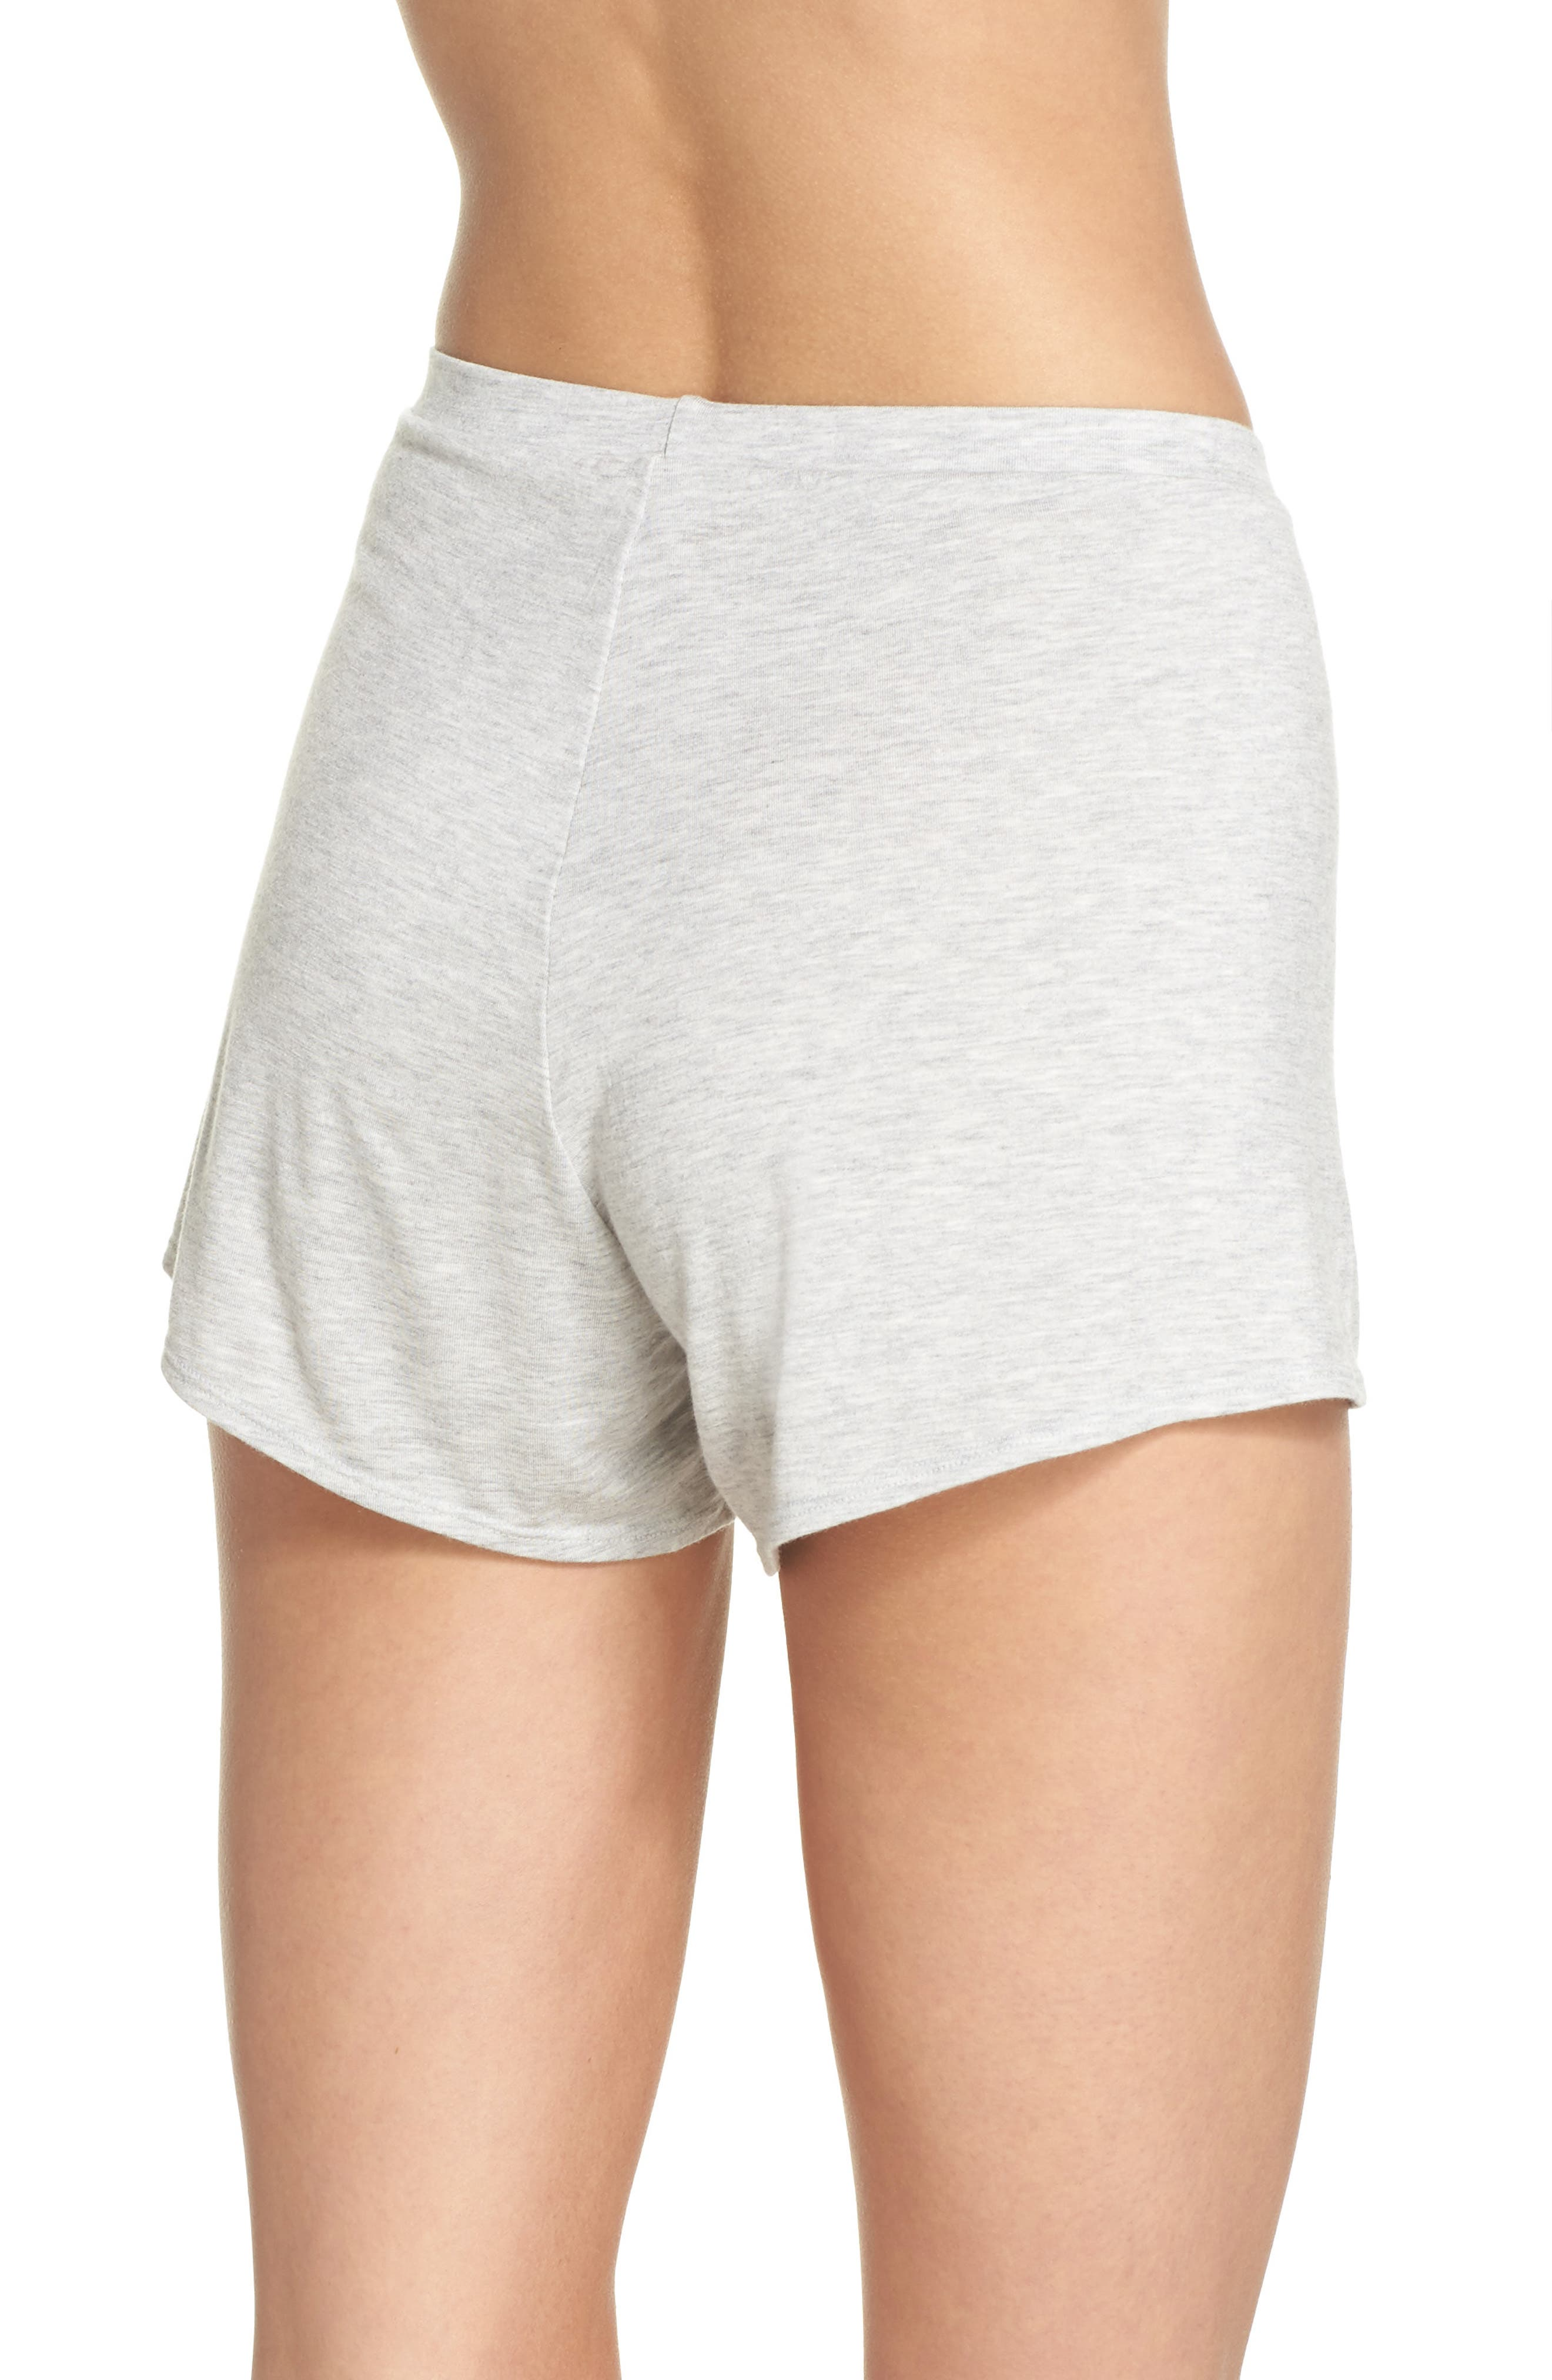 Undressed Pajama Shorts,                             Alternate thumbnail 2, color,                             Silver